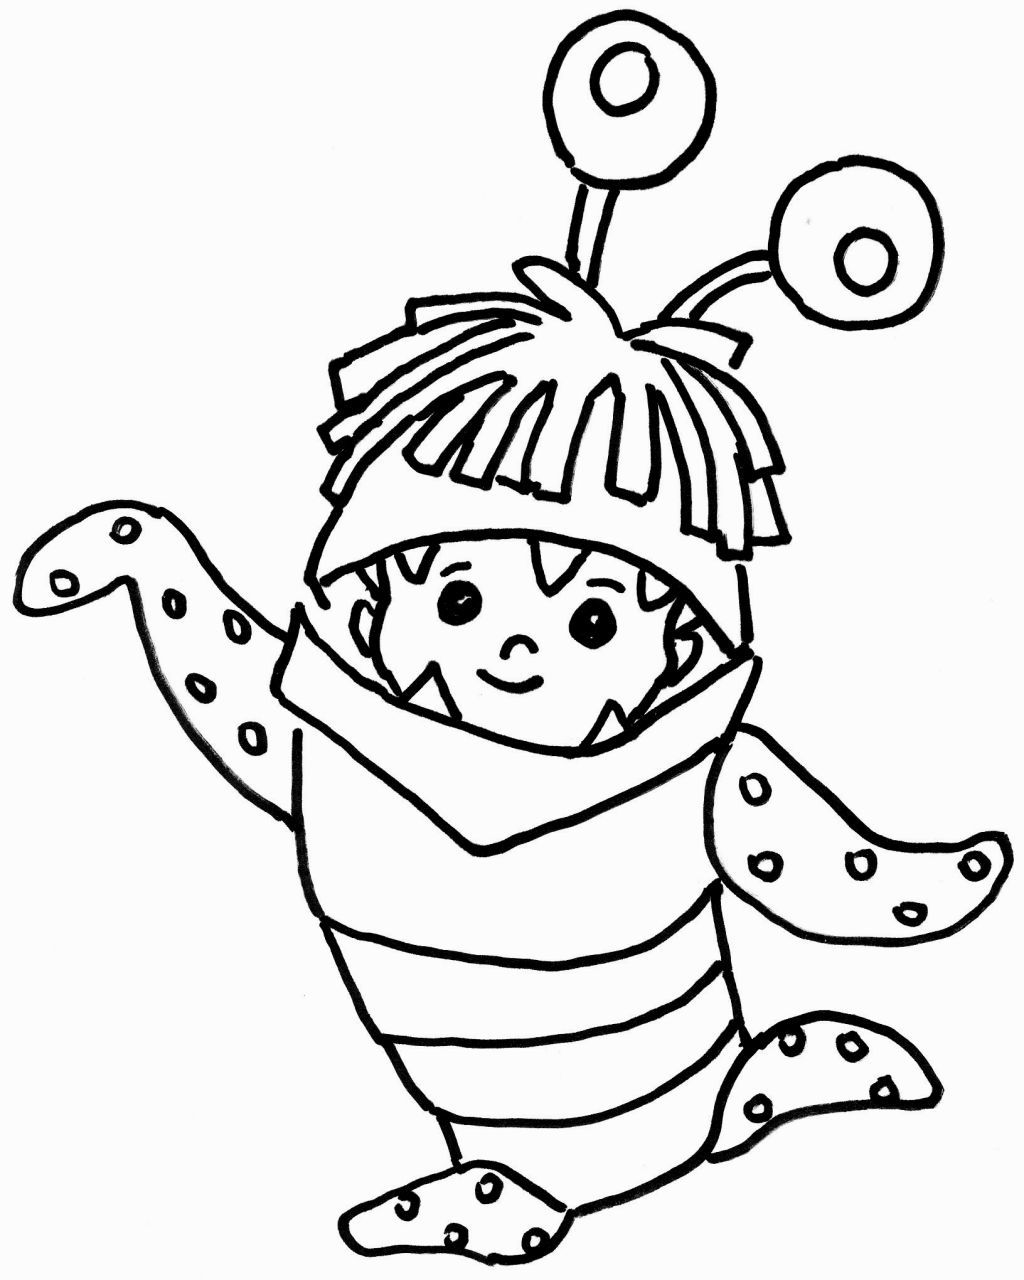 boo monsters inc coloring pages free disney coloring pages all in one place much faster boo inc monsters pages coloring